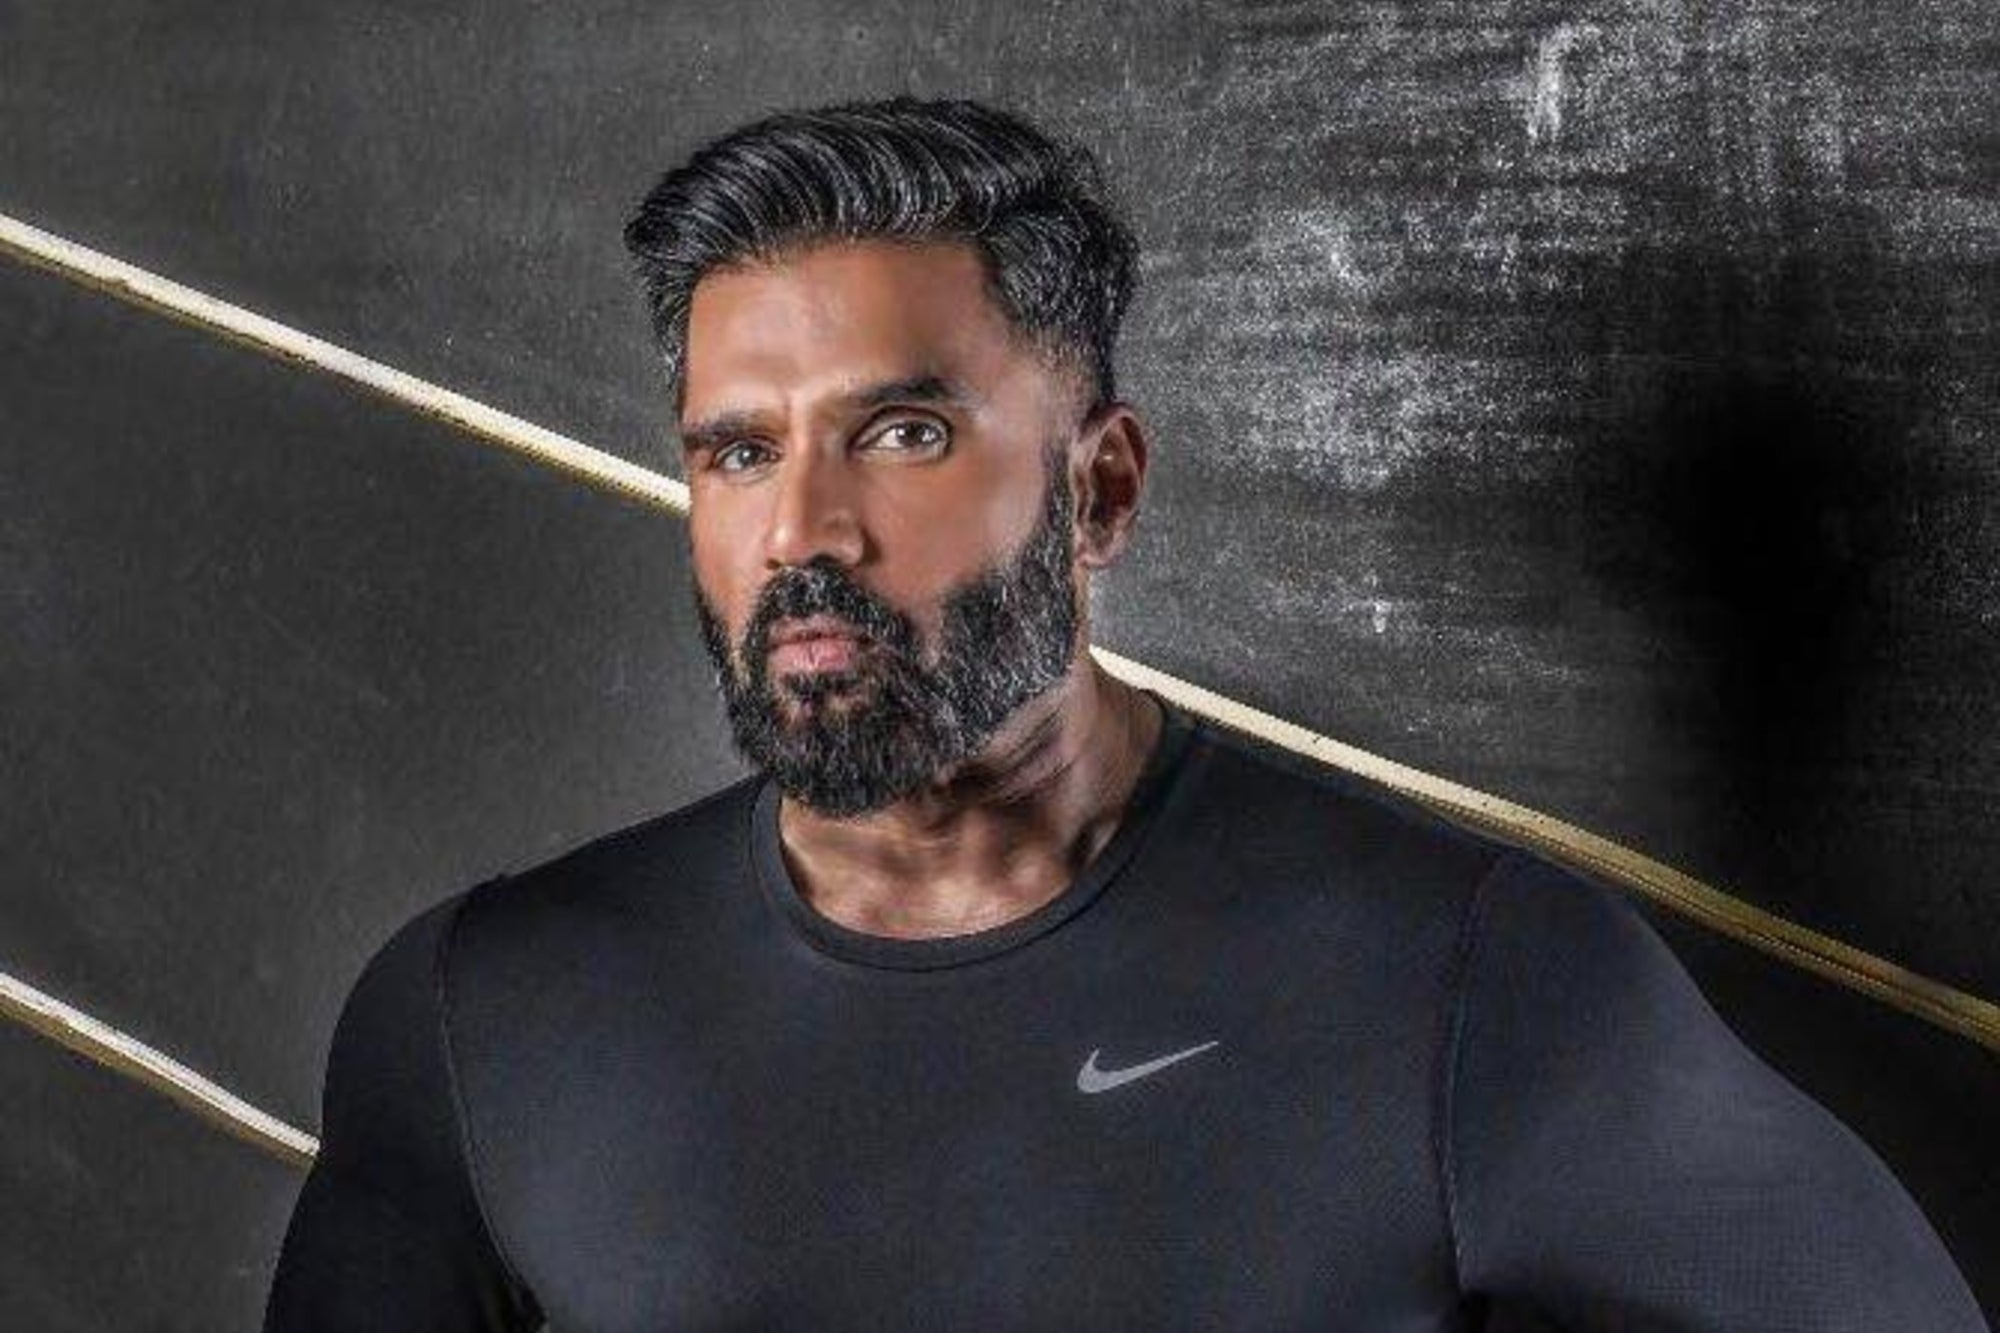 Actor Suniel Shetty Invests in Healthtech Startup That Pioneers in Epigenetic Lifestyle Modification